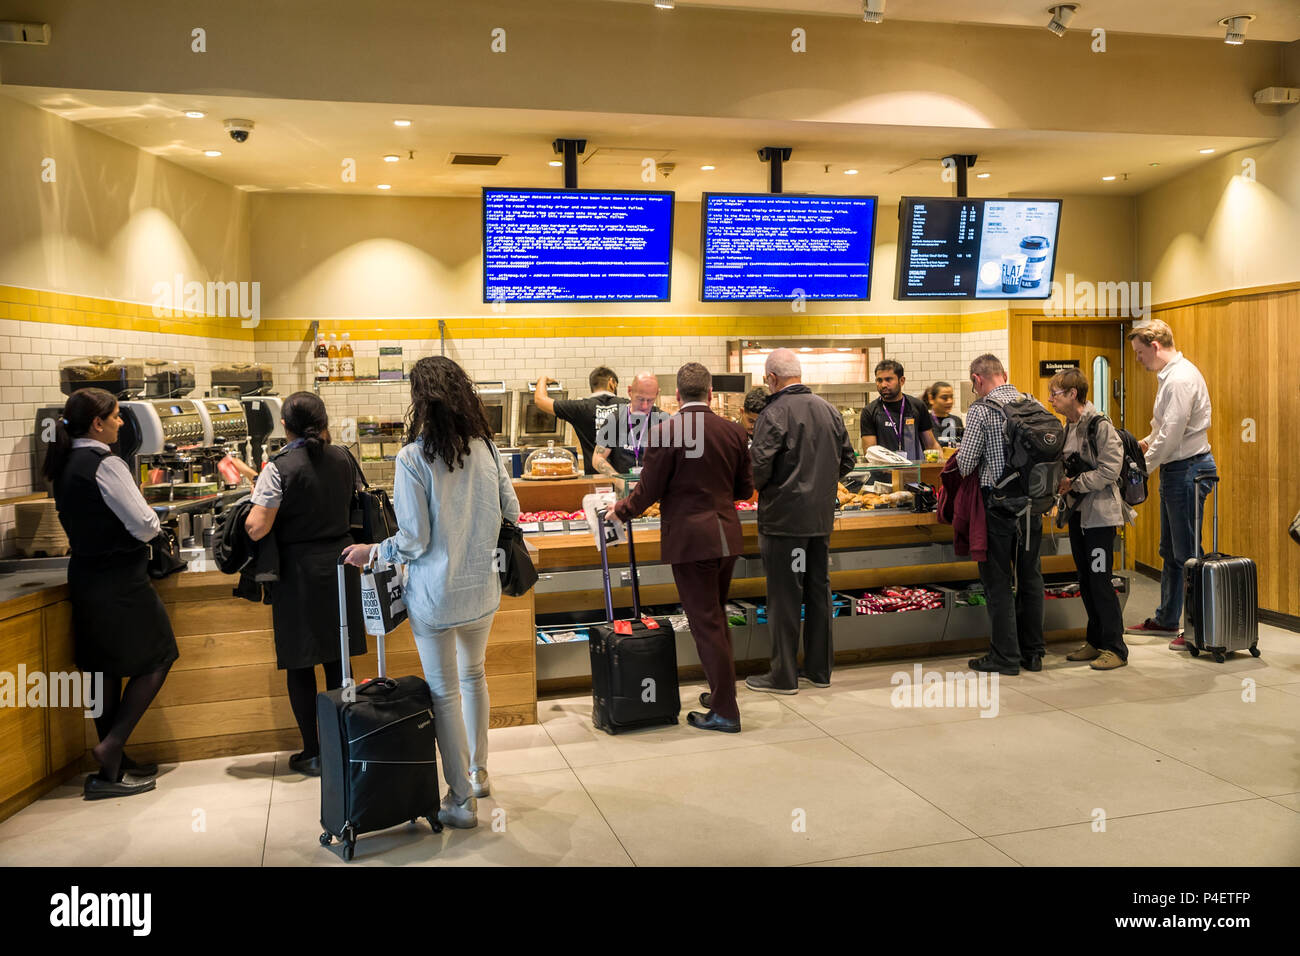 People buying fast food at counter with Windows blue screen on monitors, Heathrow, London airport, UK - Stock Image